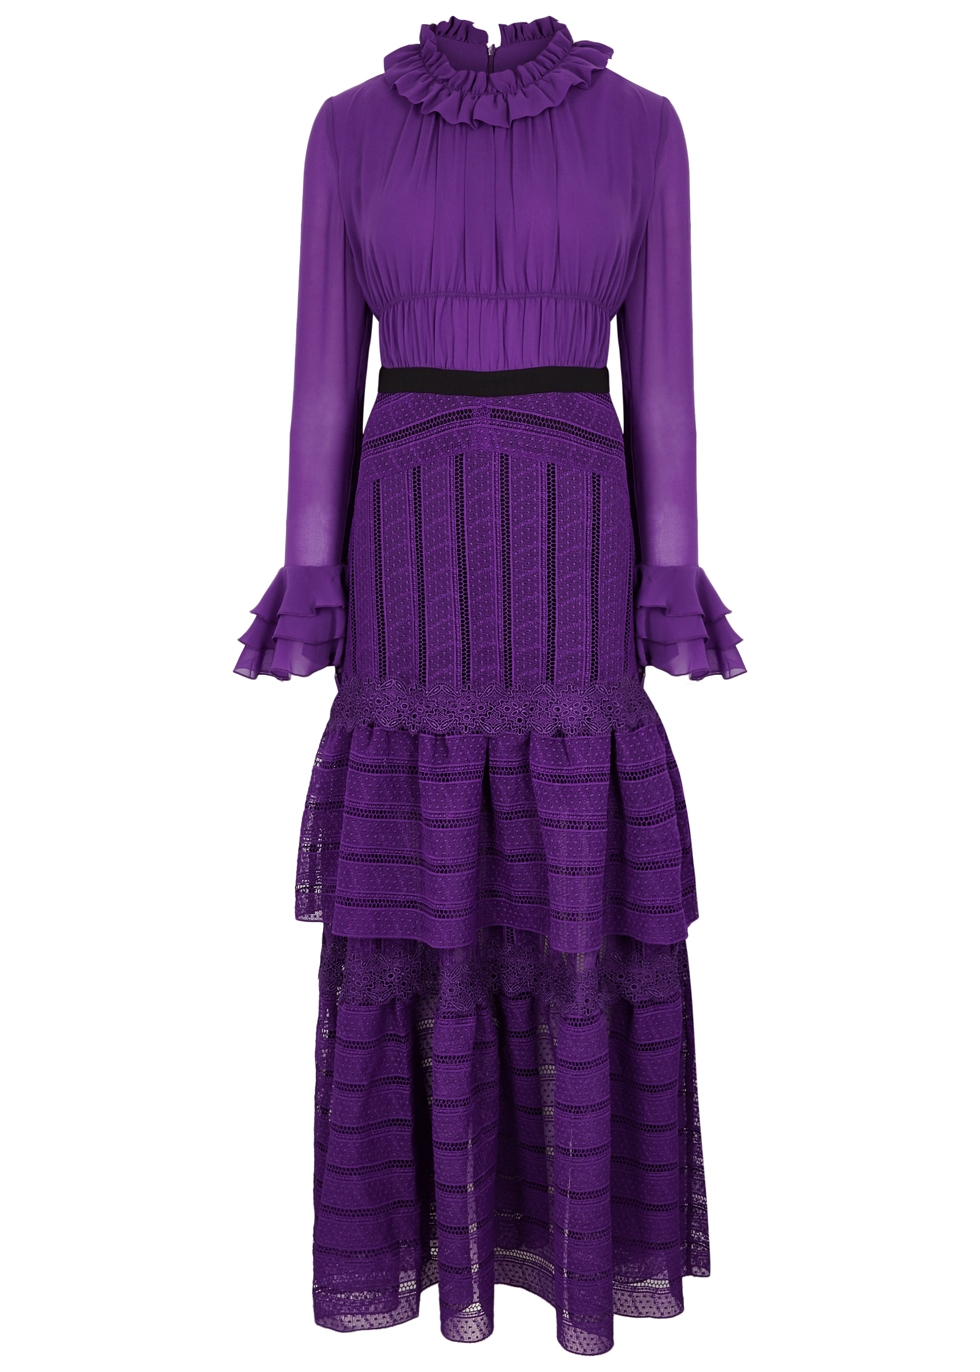 THREE FLOOR ULTRALICIOUS PURPLE GUIPURE LACE GOWN